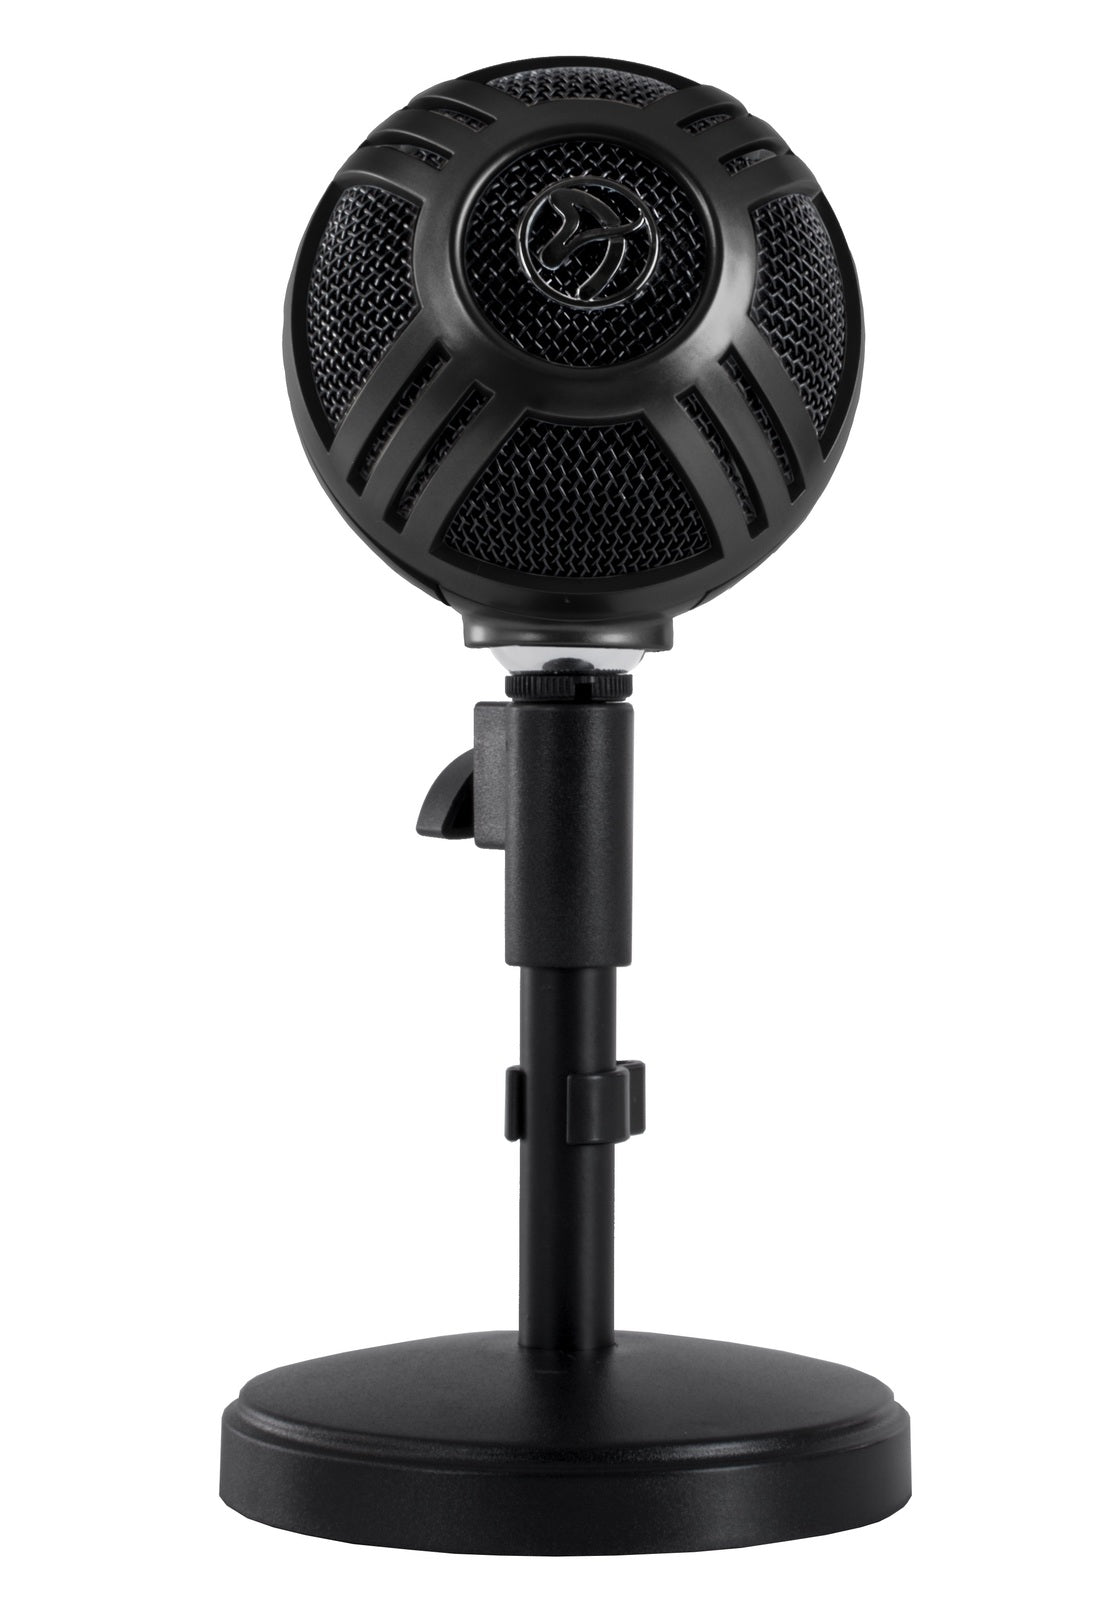 Arozzi Sfera PRO Microphone (Black) - PC Games